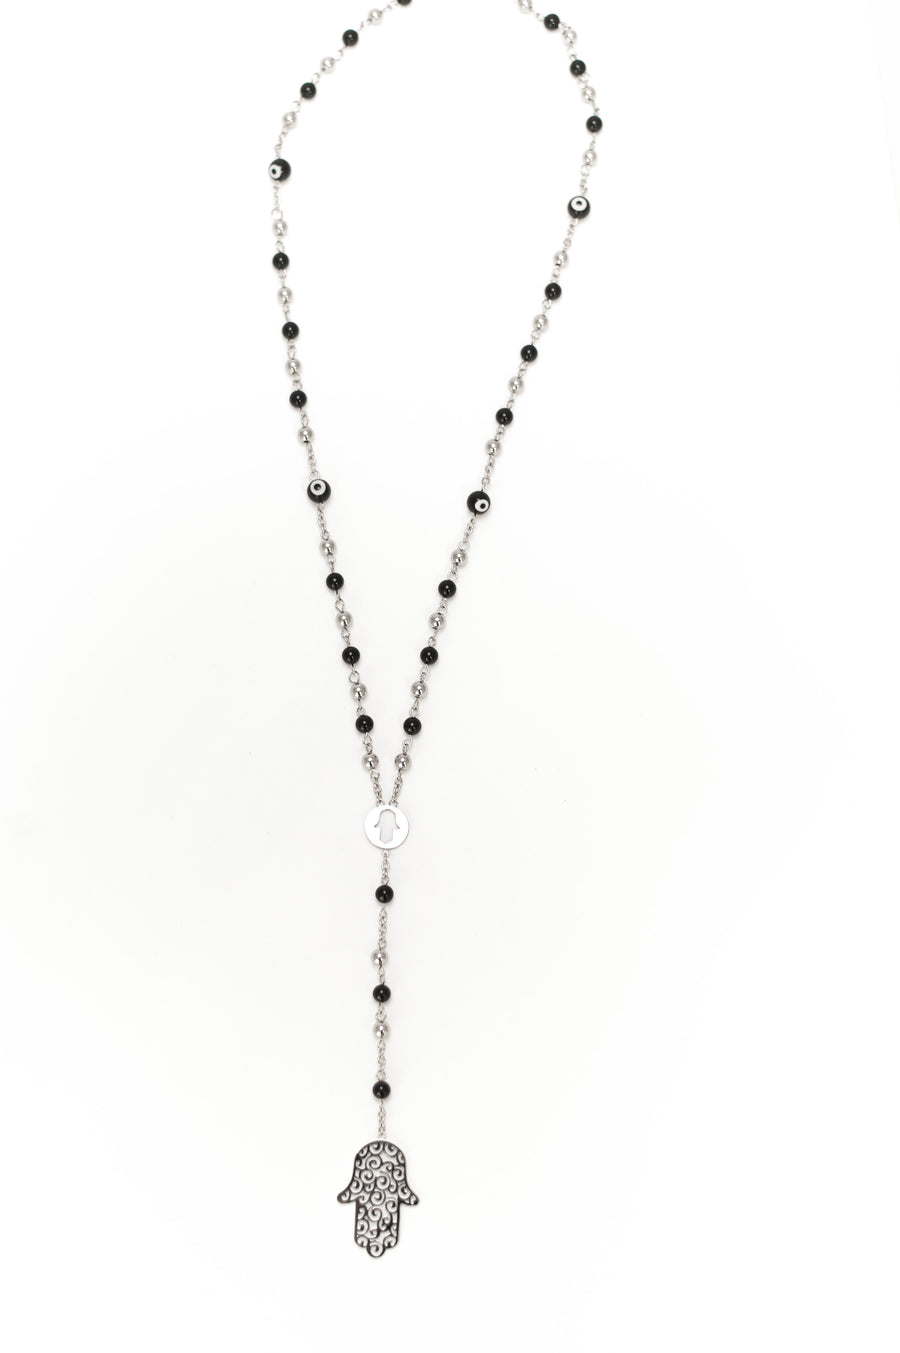 Beaded Hamsa Necklace - Stainless Steel